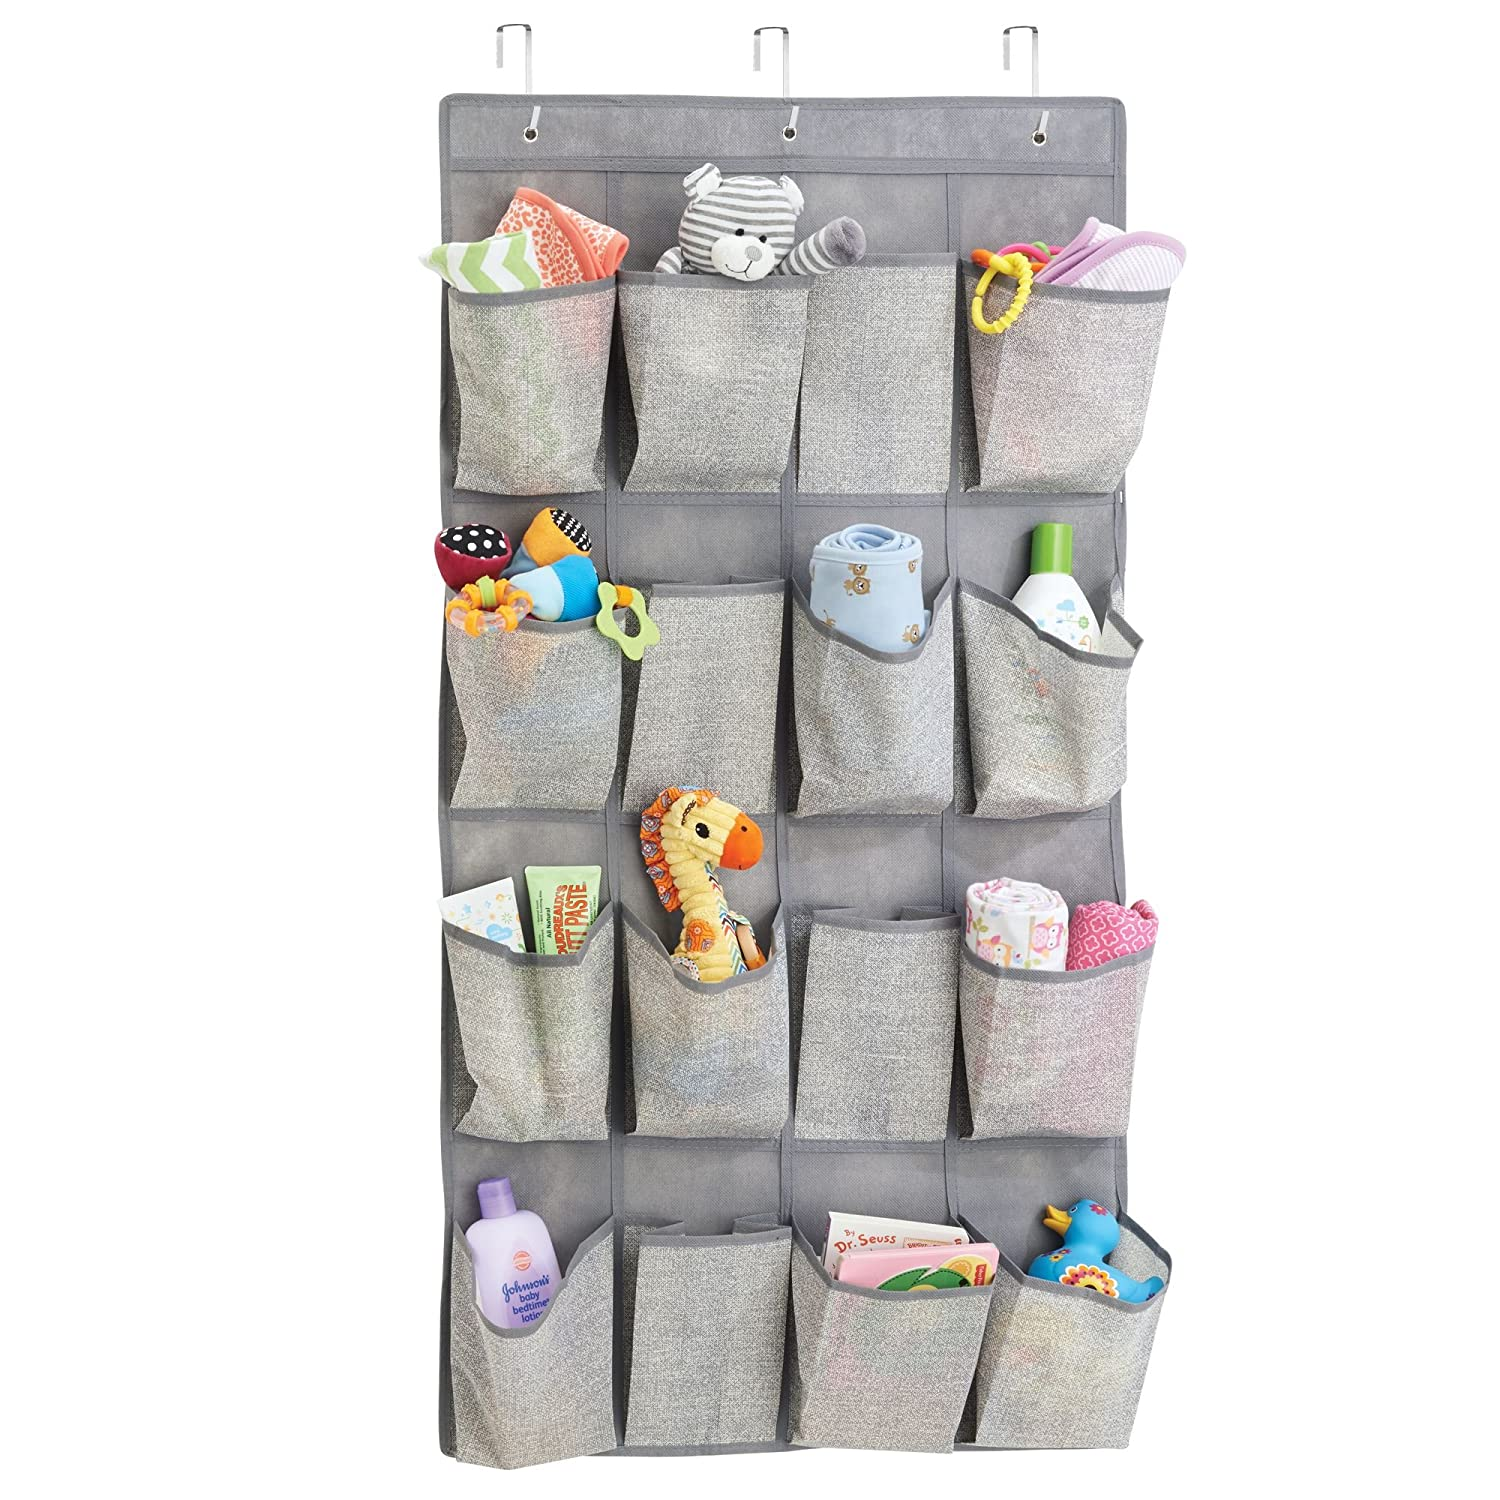 mDesign Hanging Storage Pocket Organiser - Practical Hanging Pocket Storage Made of Fabric - Perfect Hanging Organiser for Baby Products - Hanging Storage with 16 Pockets - Taupe / Natural MetroDecor 1471MDCO